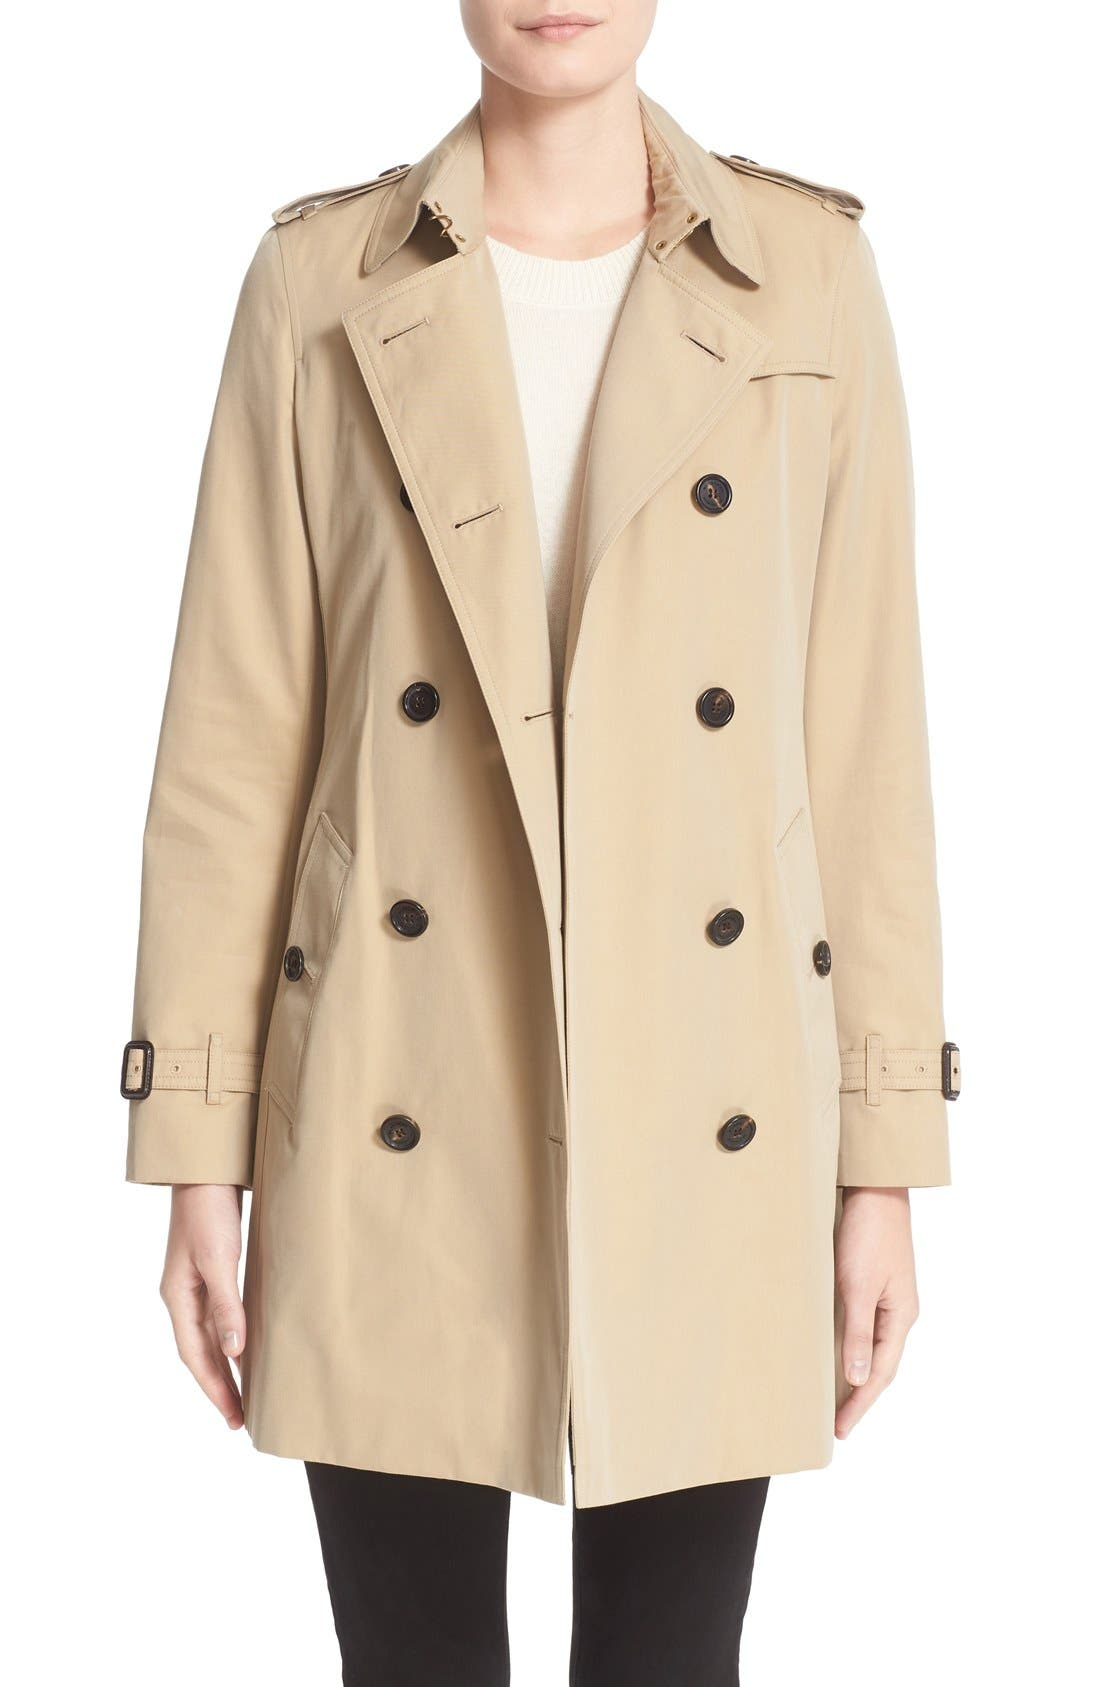 BURBERRY London 'Kensington' Double Breasted Trench Coat